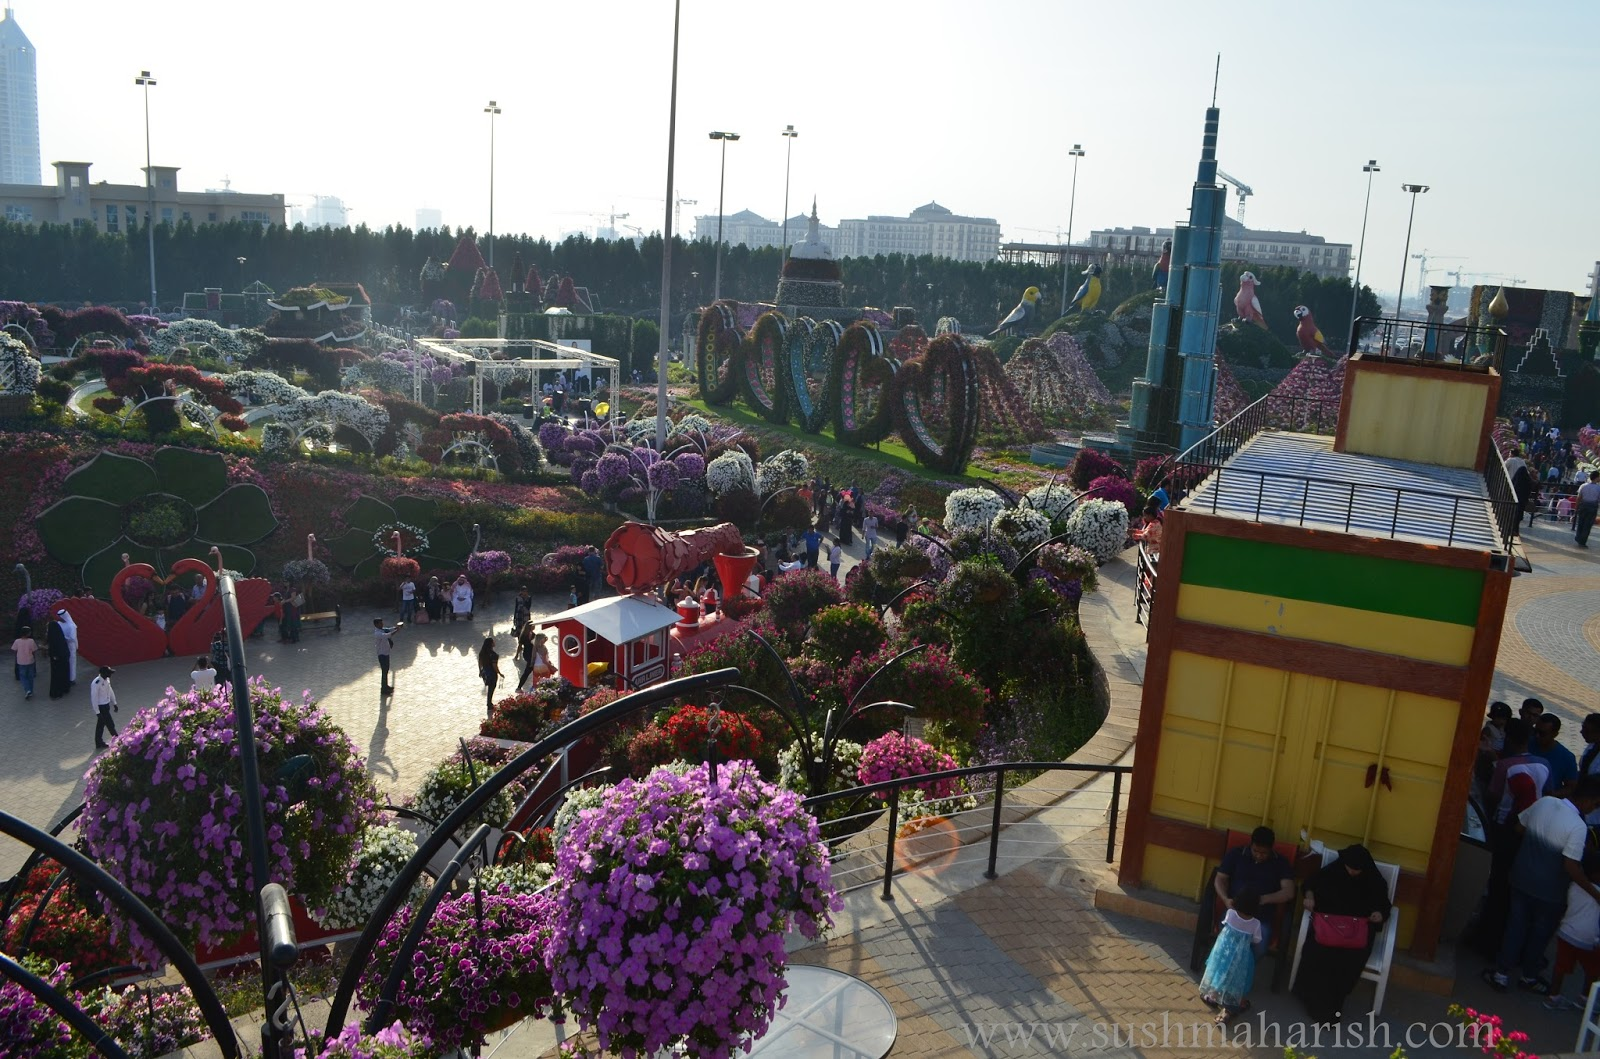 Exploring Beyond The Skyscrapers. Largest Flower Garden Of The World - Miracle Garden Dubai. 35